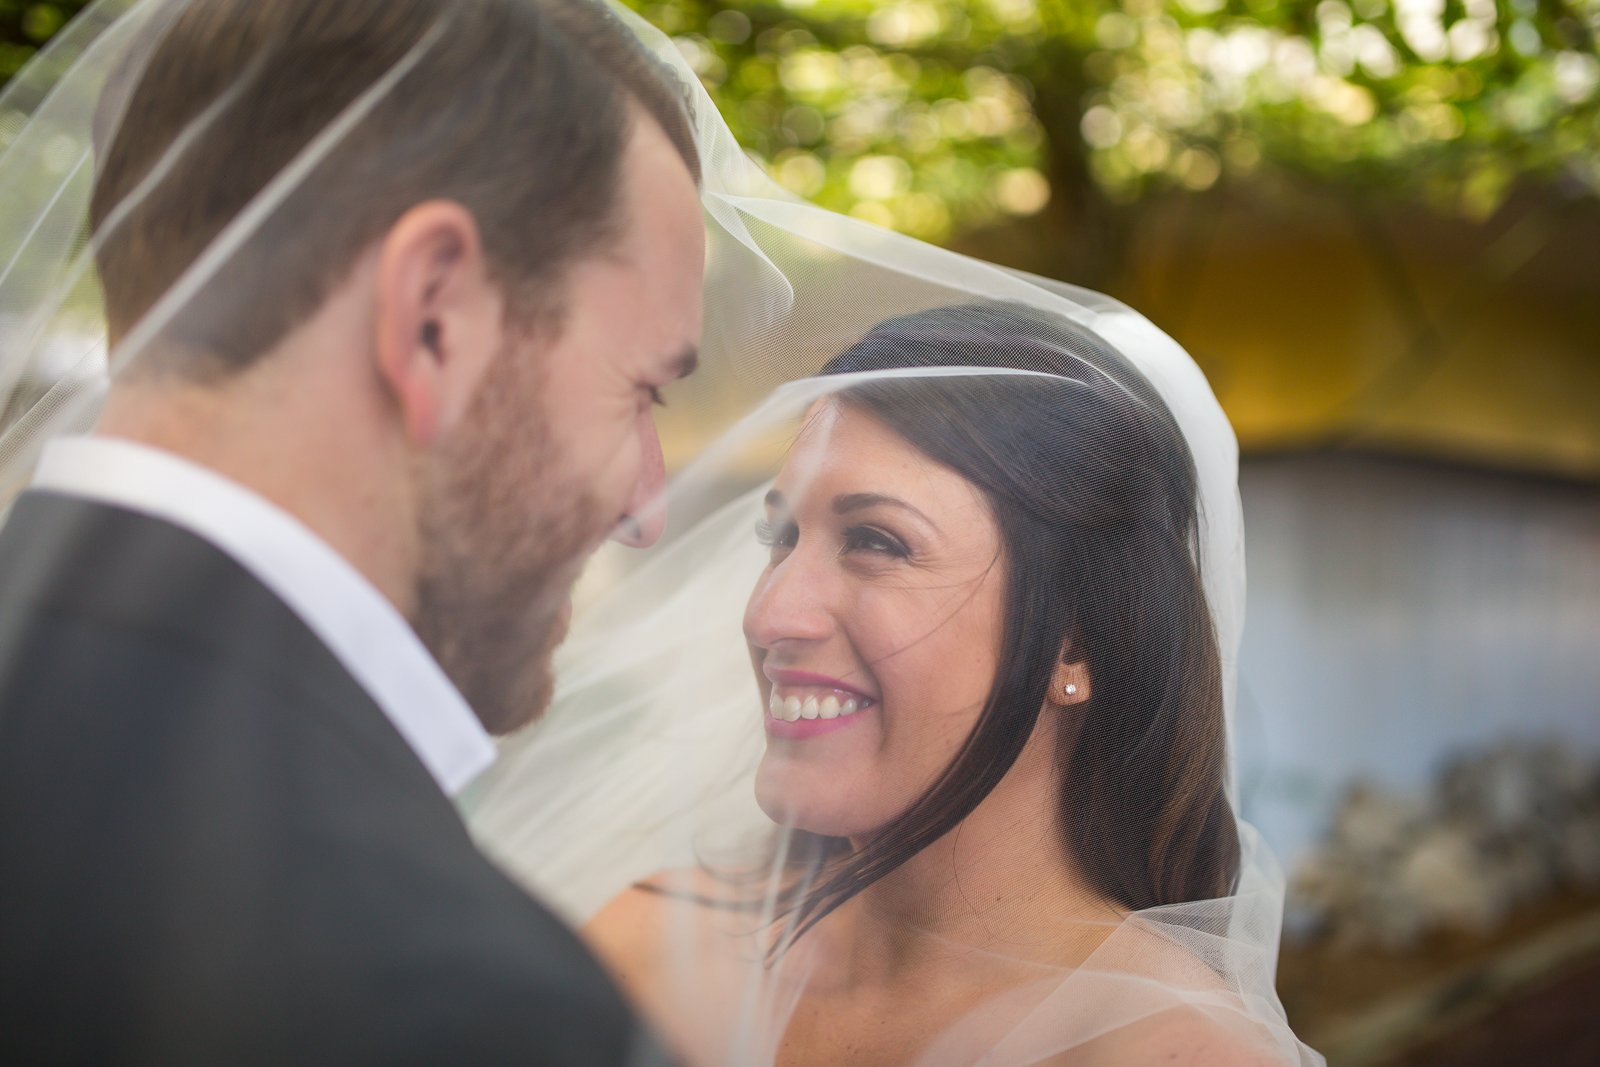 bride and groom having fun with the veil